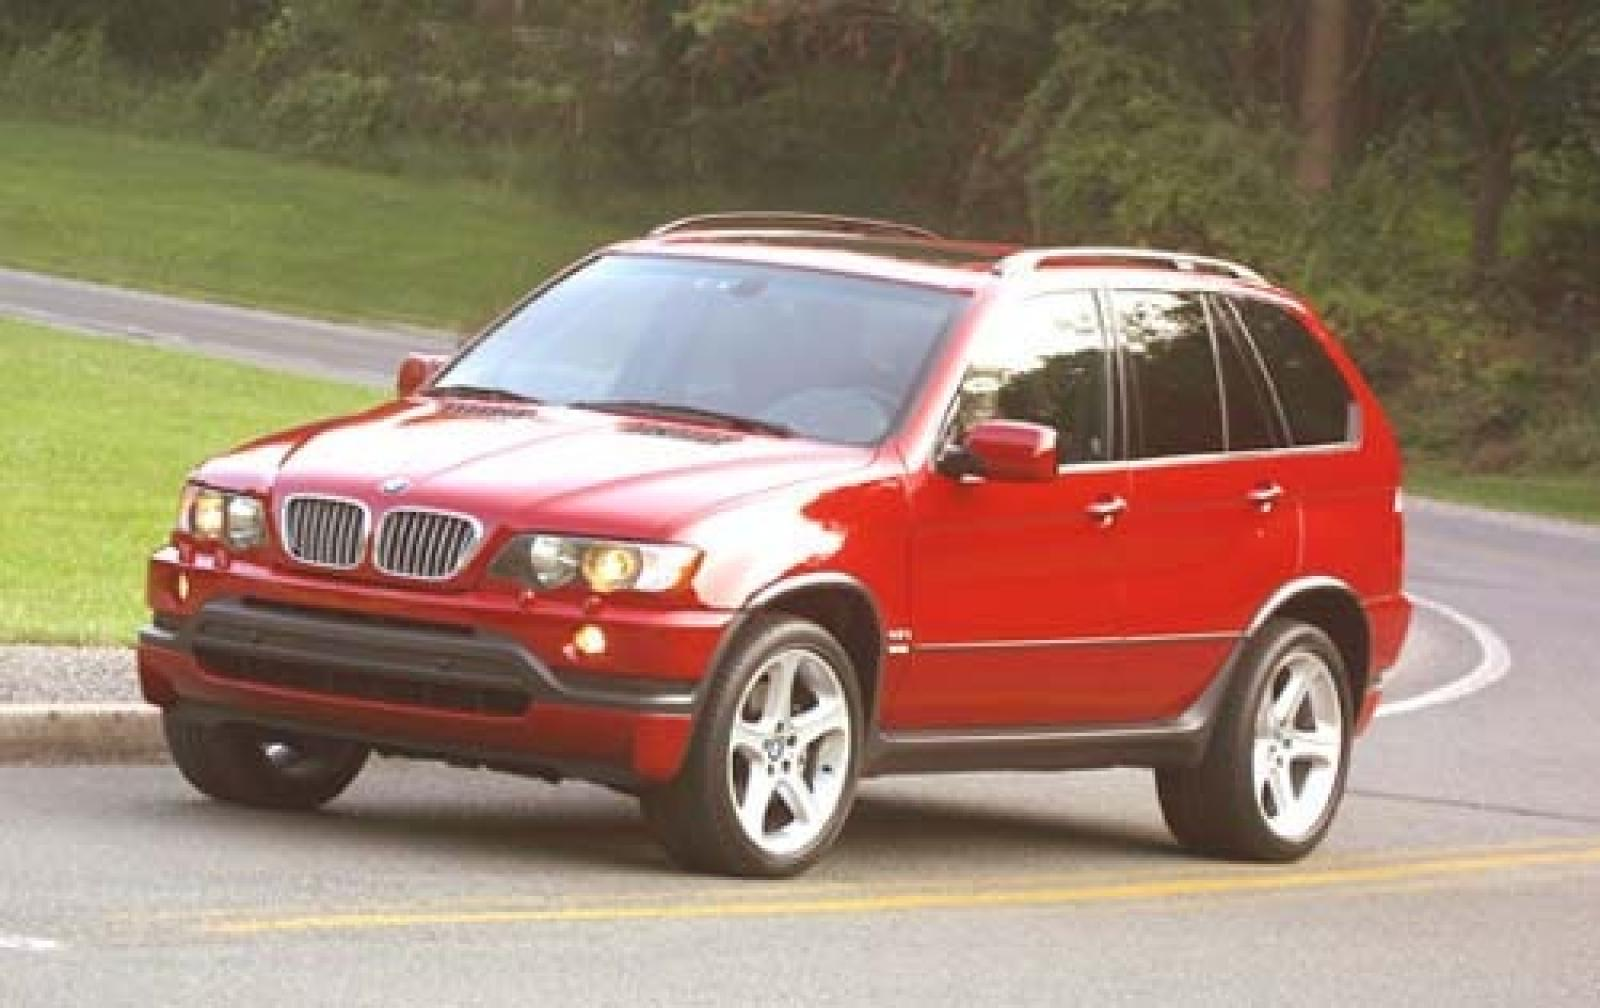 2003 bmw x5 information and photos zombiedrive. Black Bedroom Furniture Sets. Home Design Ideas